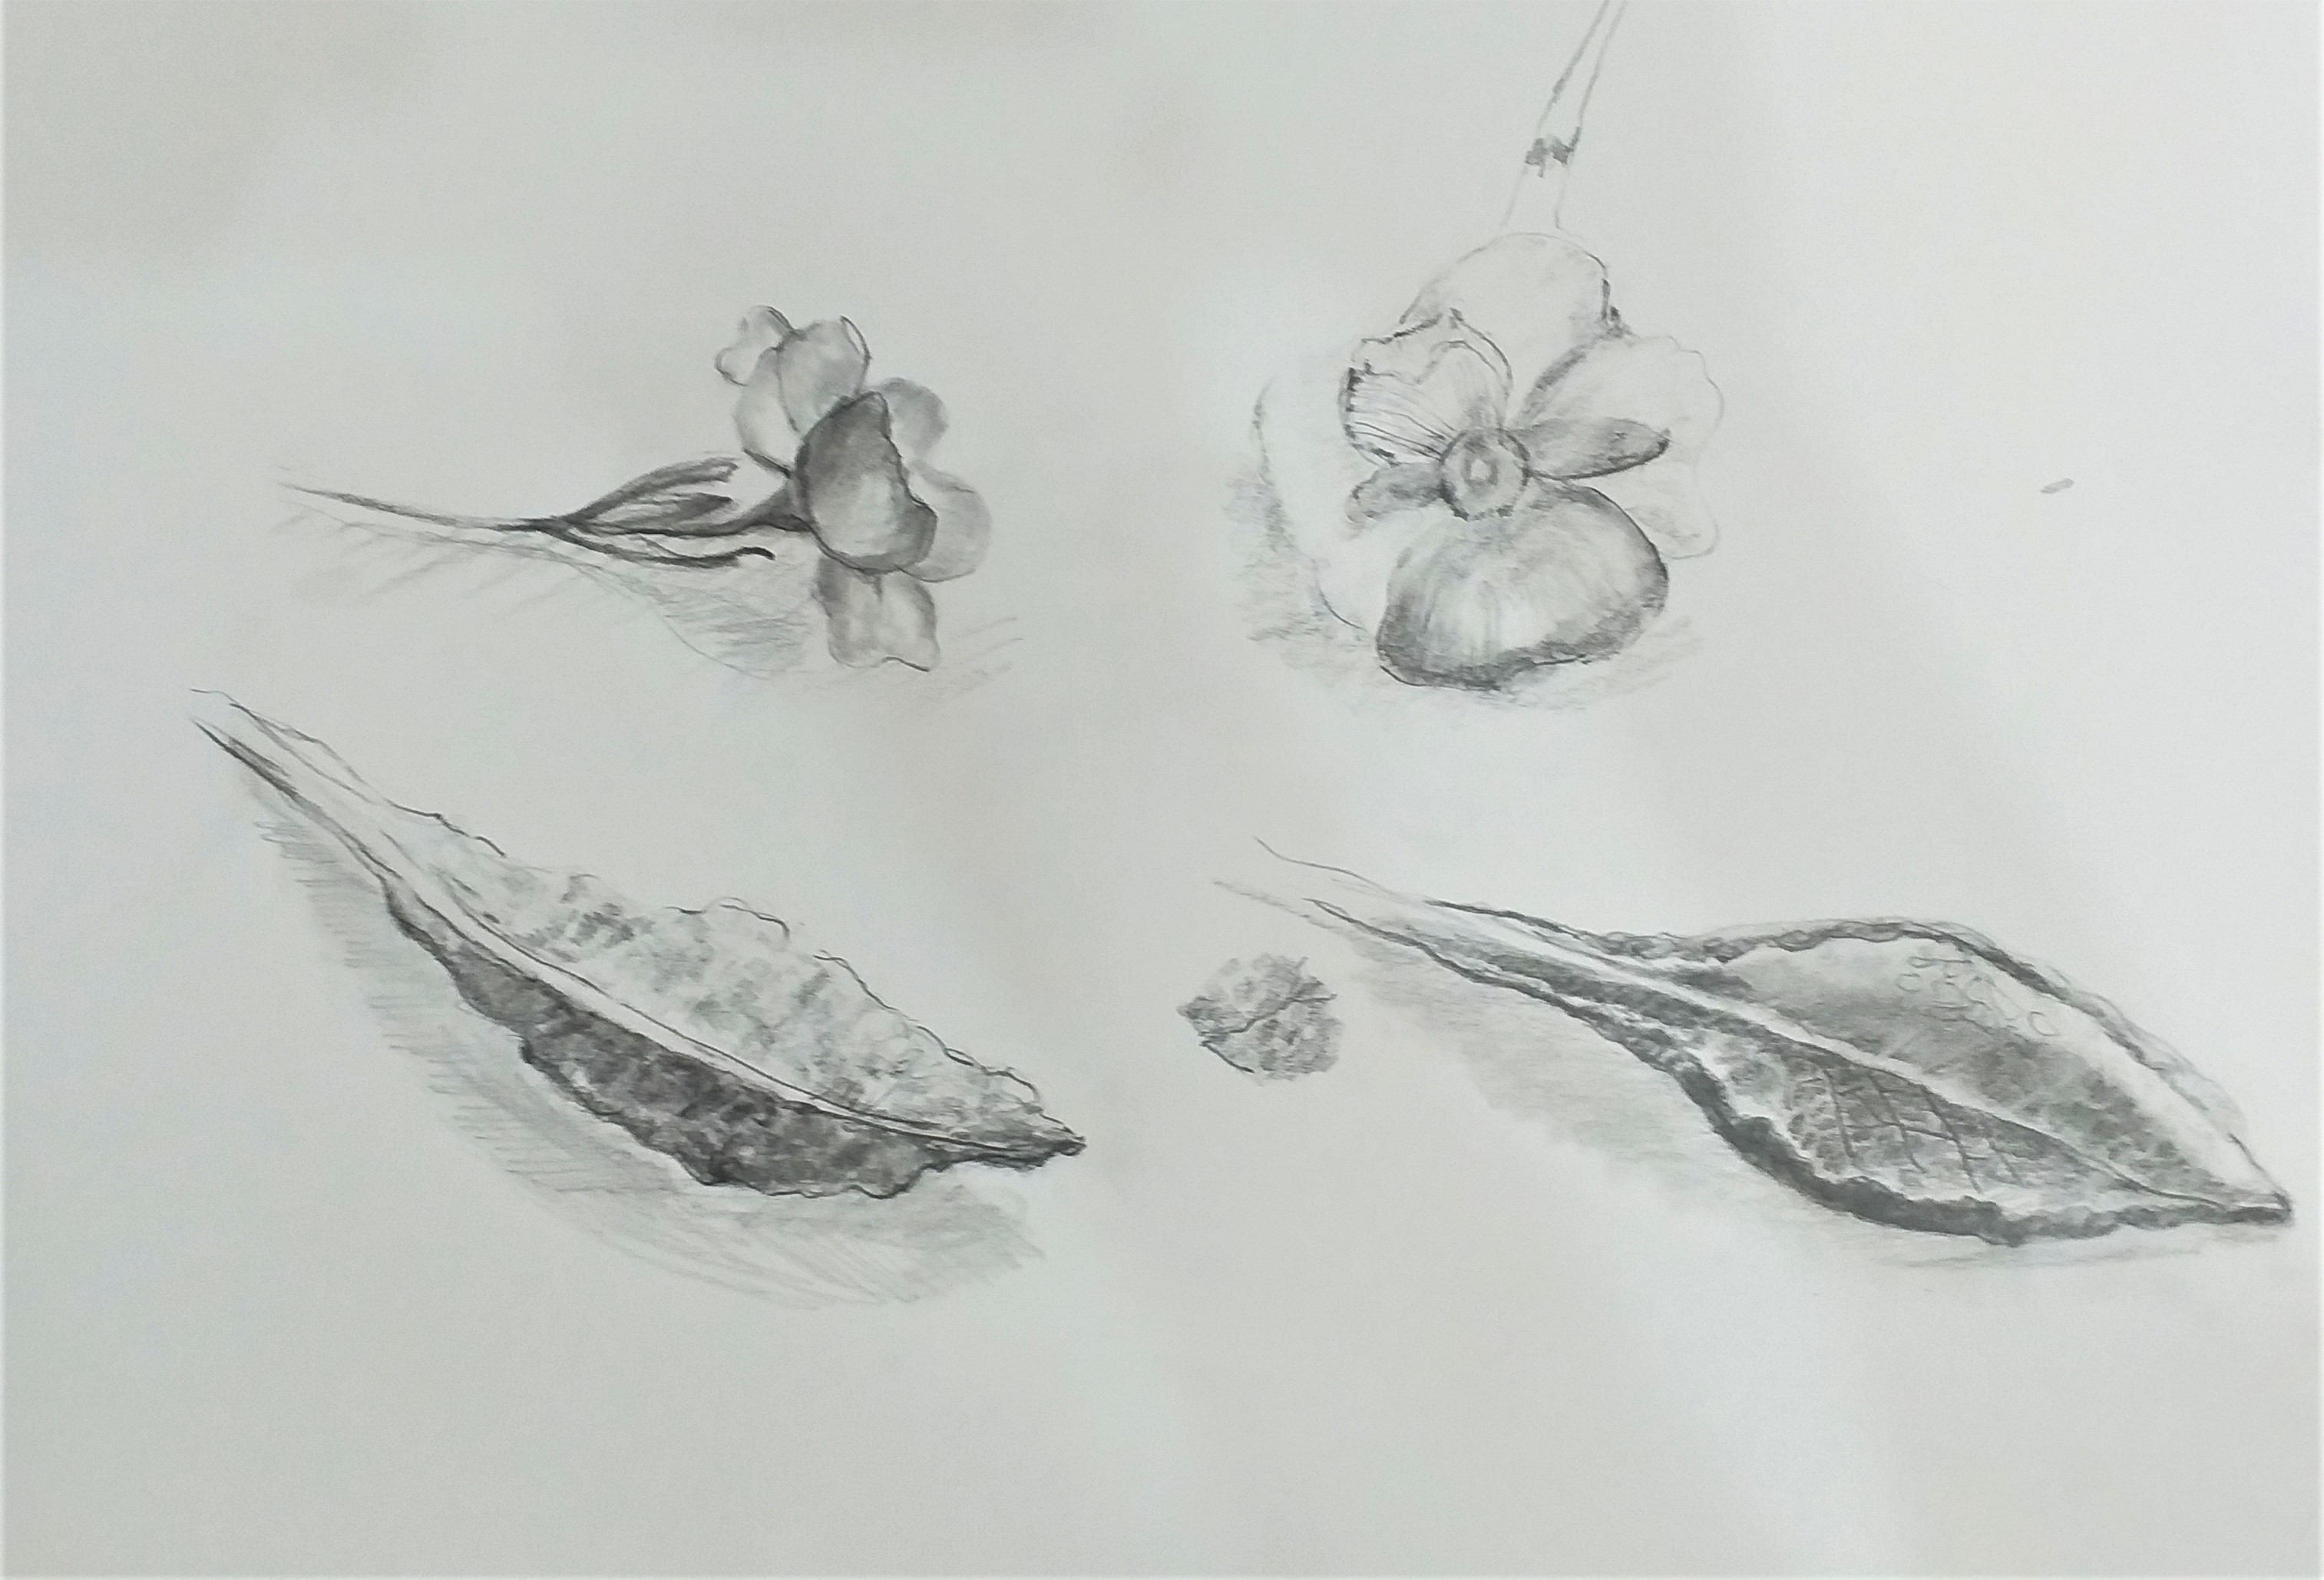 pencil-drawings-of-plants-by-Linda-at-art-classes-in-Worcestershire